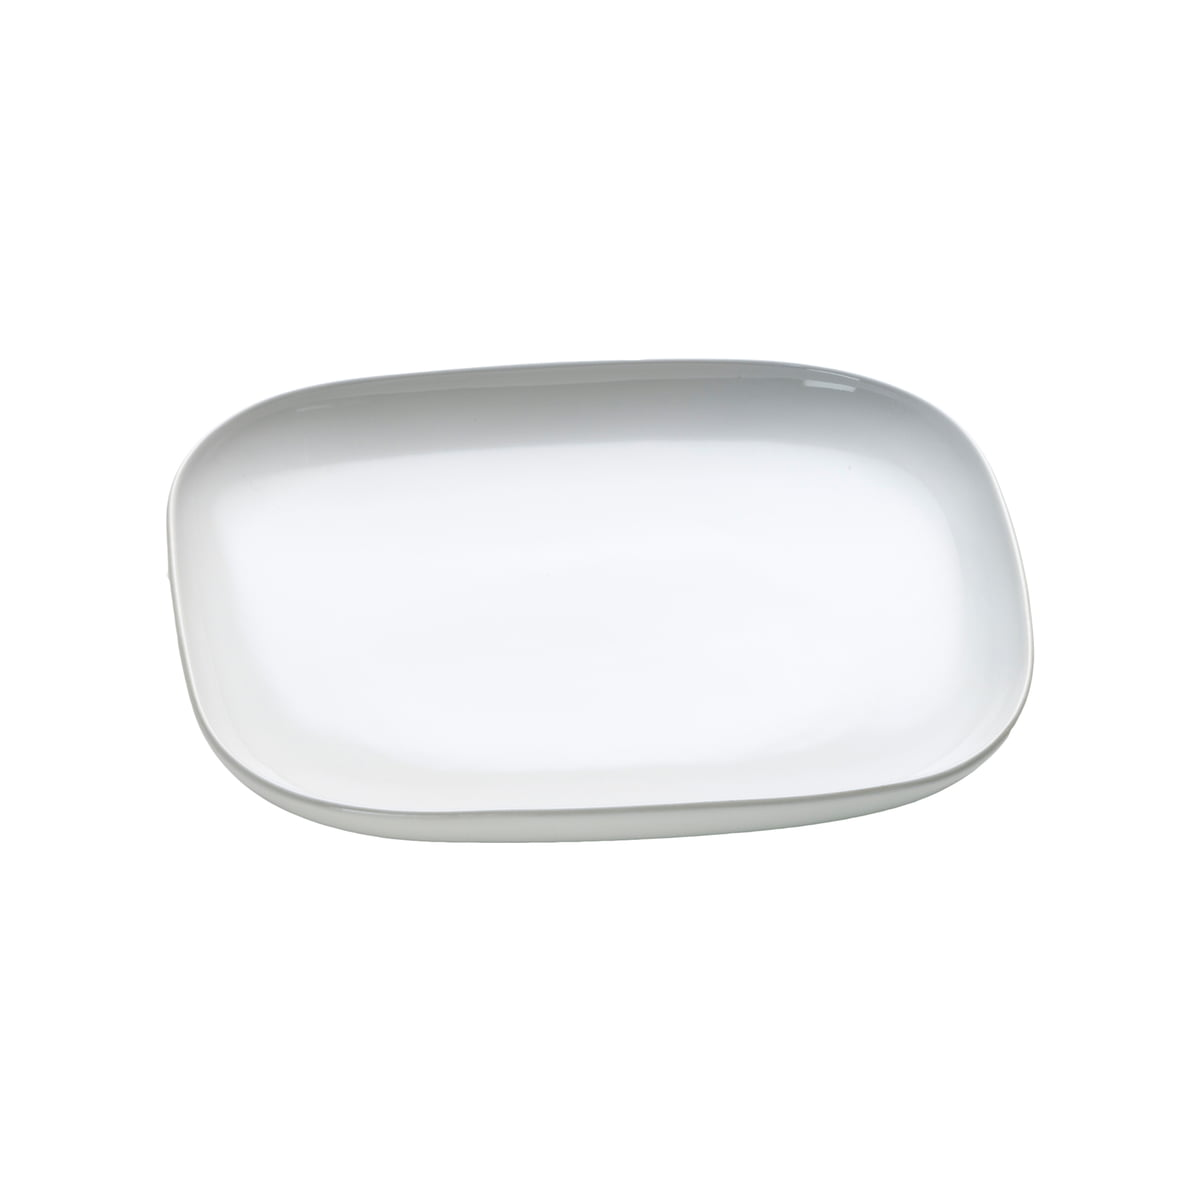 ovale dinner plate by alessi in the shop - ovale dessert plate by alessi